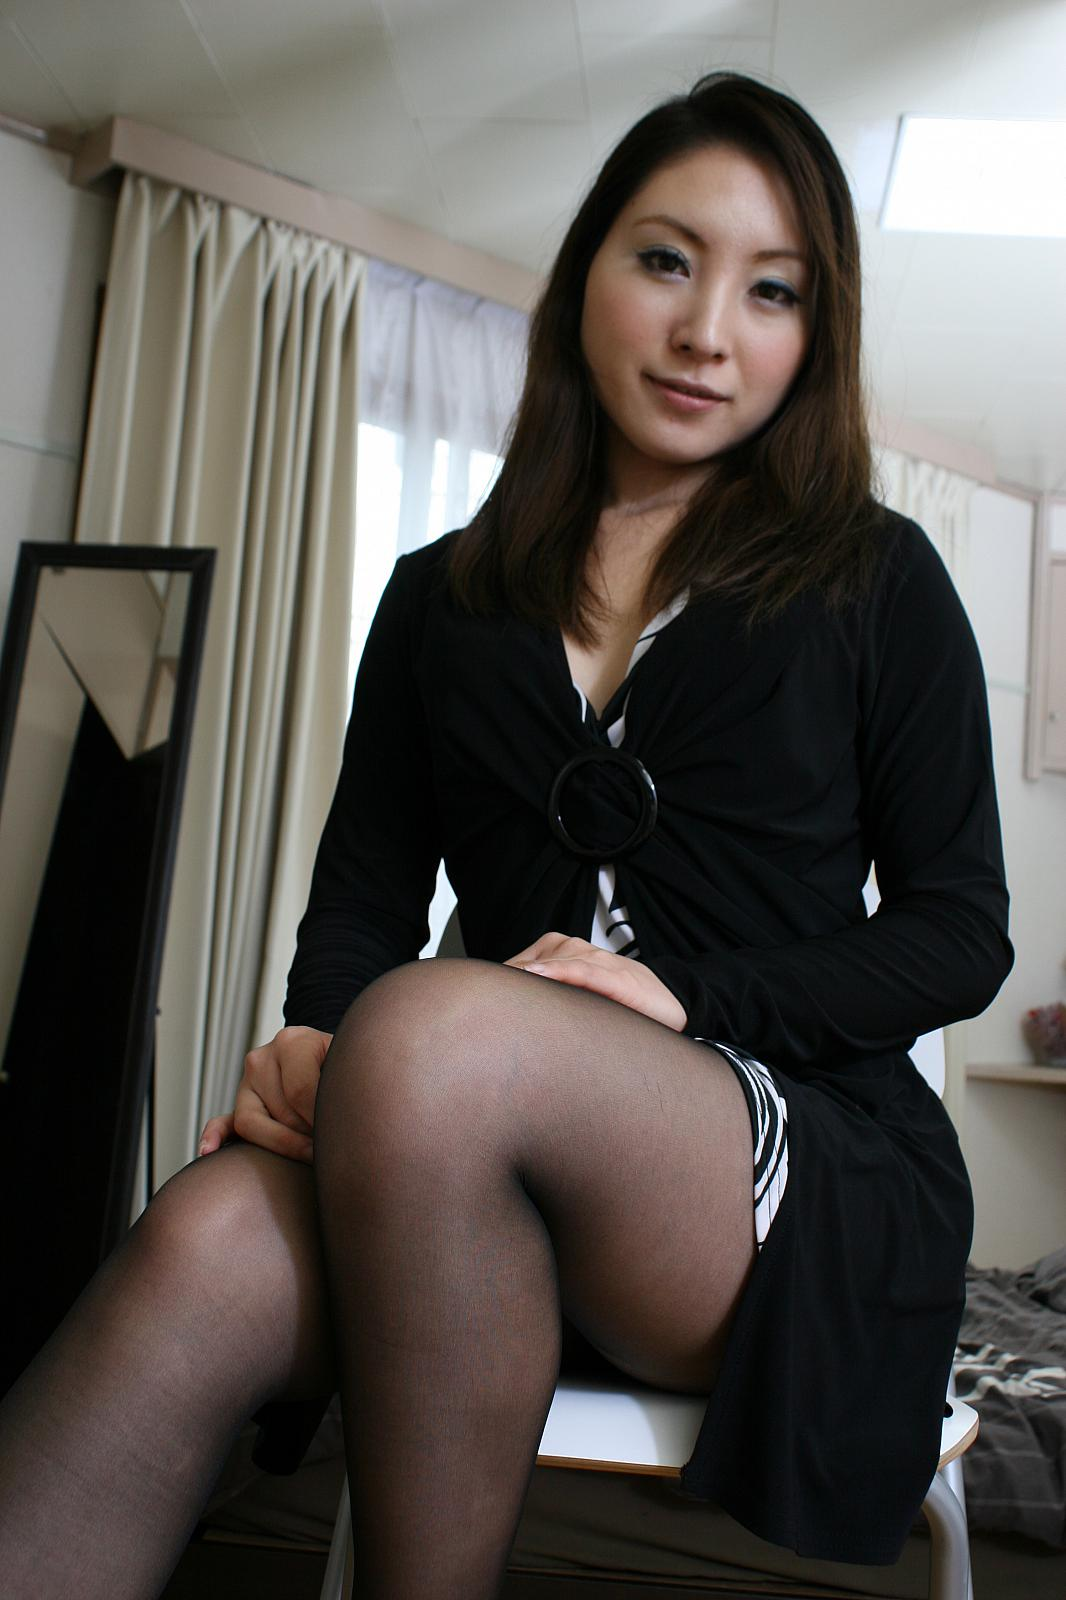 Sexual Pantyhose On Gallery 113